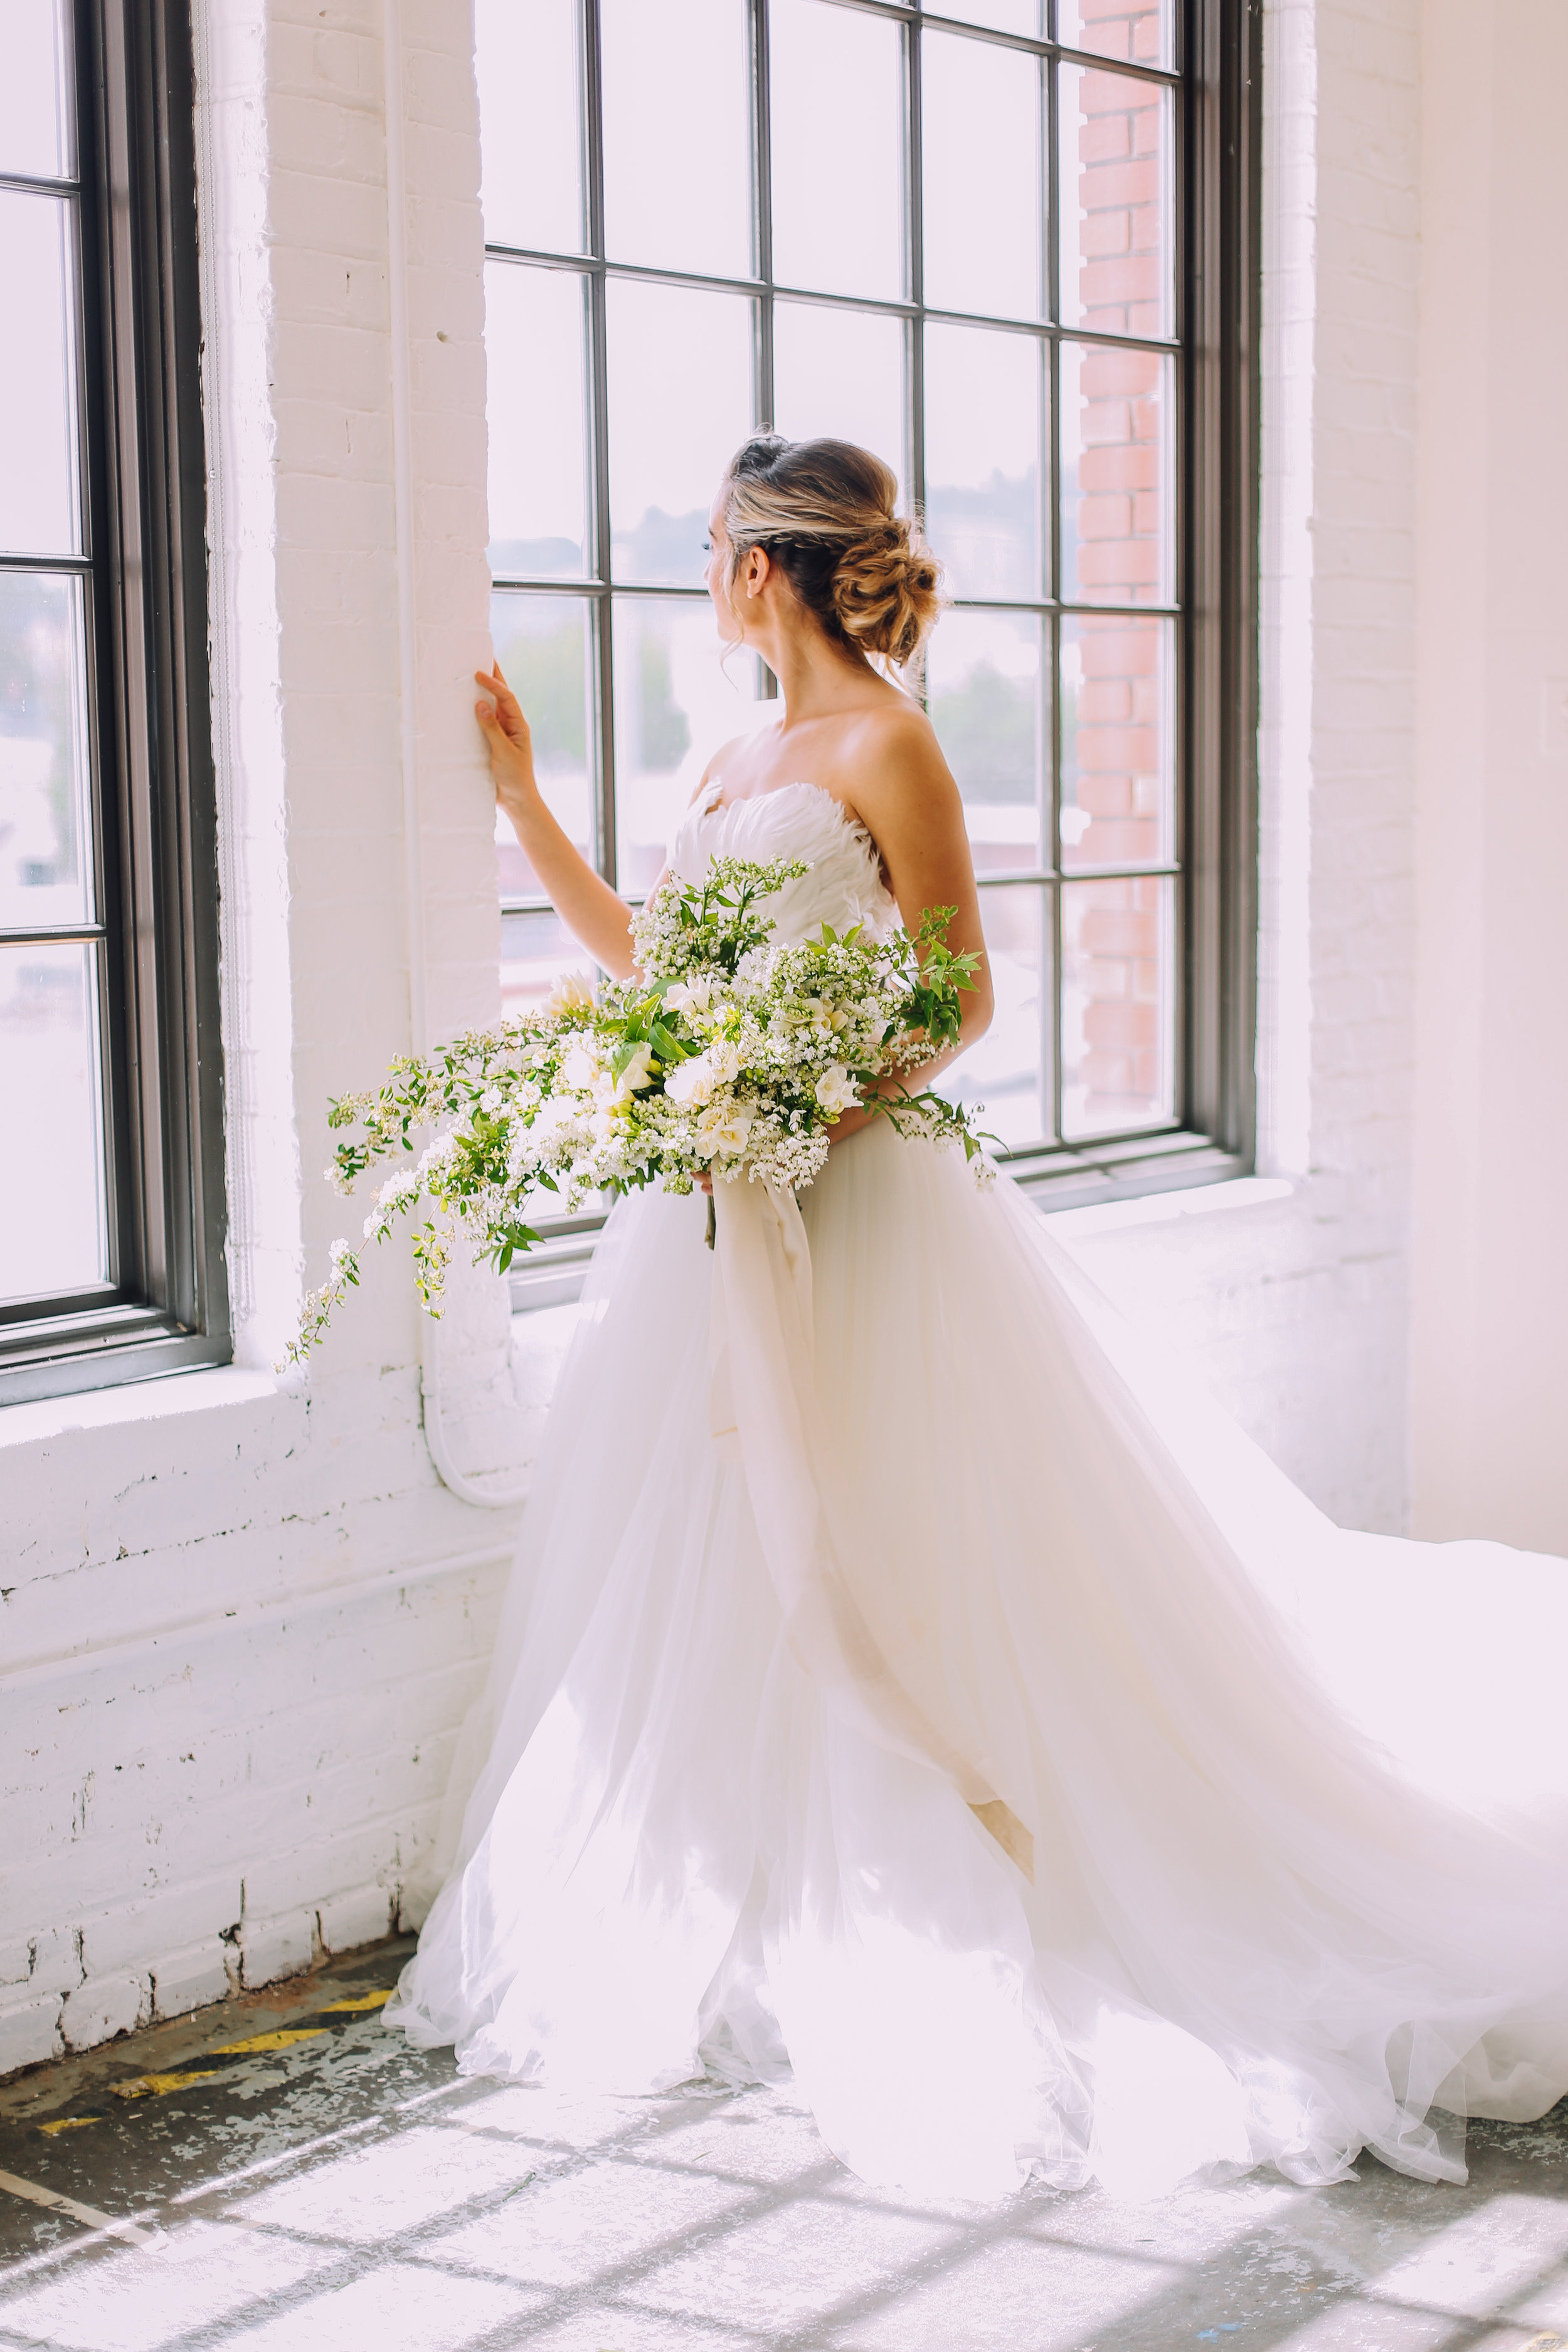 Spring Bridal Stylized Shoot-7.jpg